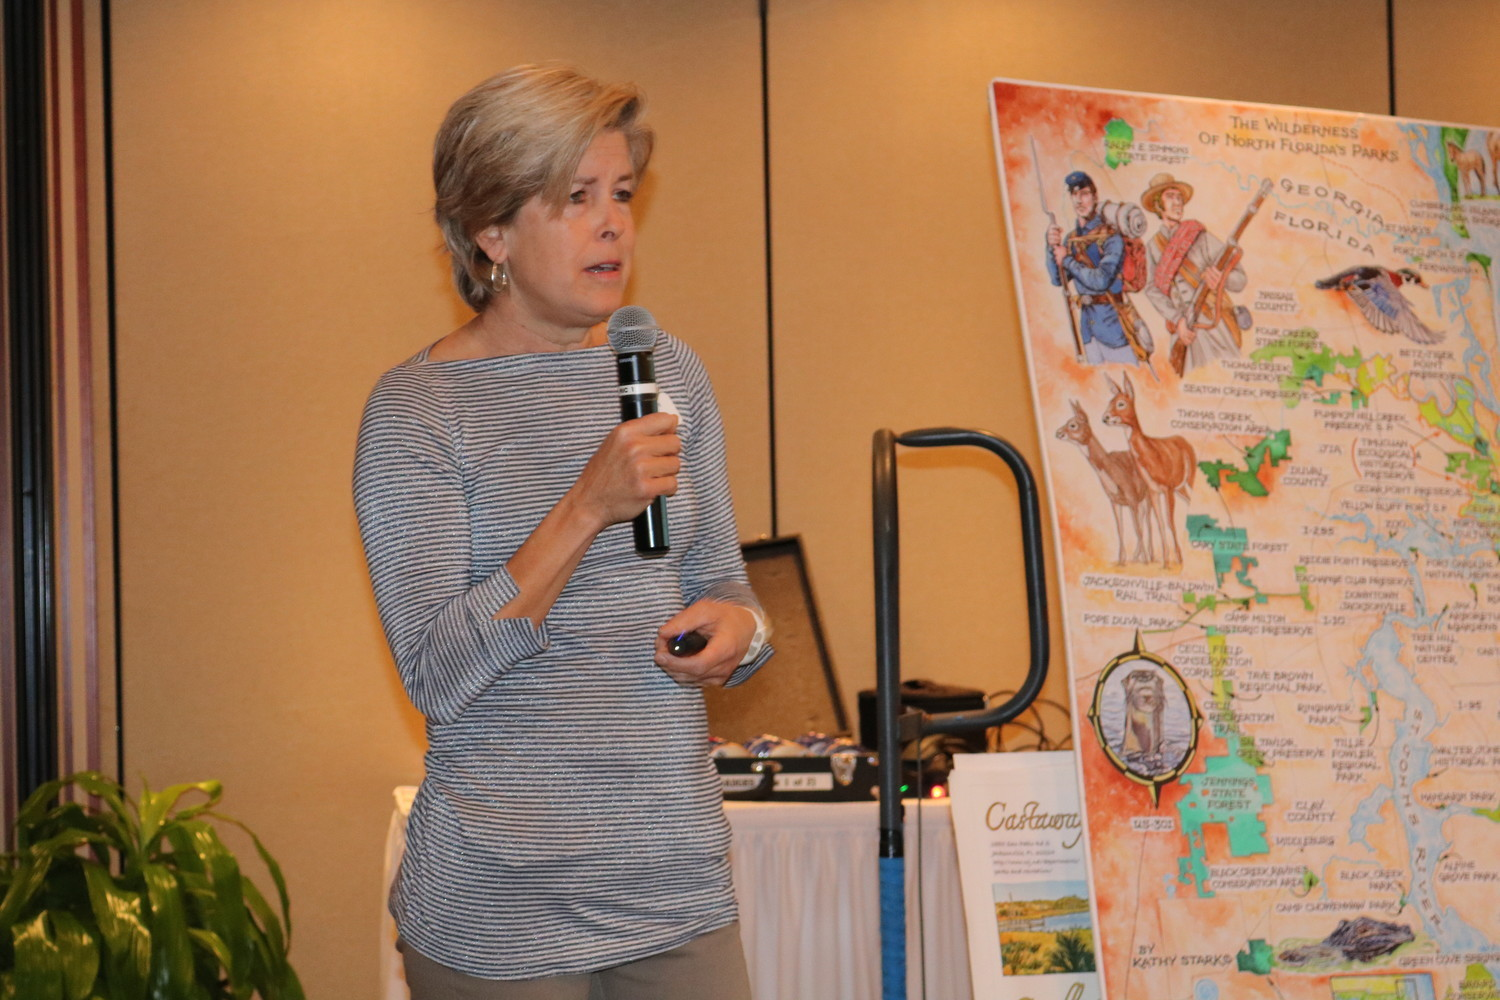 Jacksonville artist Kathy Stark presents her work on the First Coast's natural parks to the Rotary Club of Ponte Vedra Beach Thursday, Jan. 25.